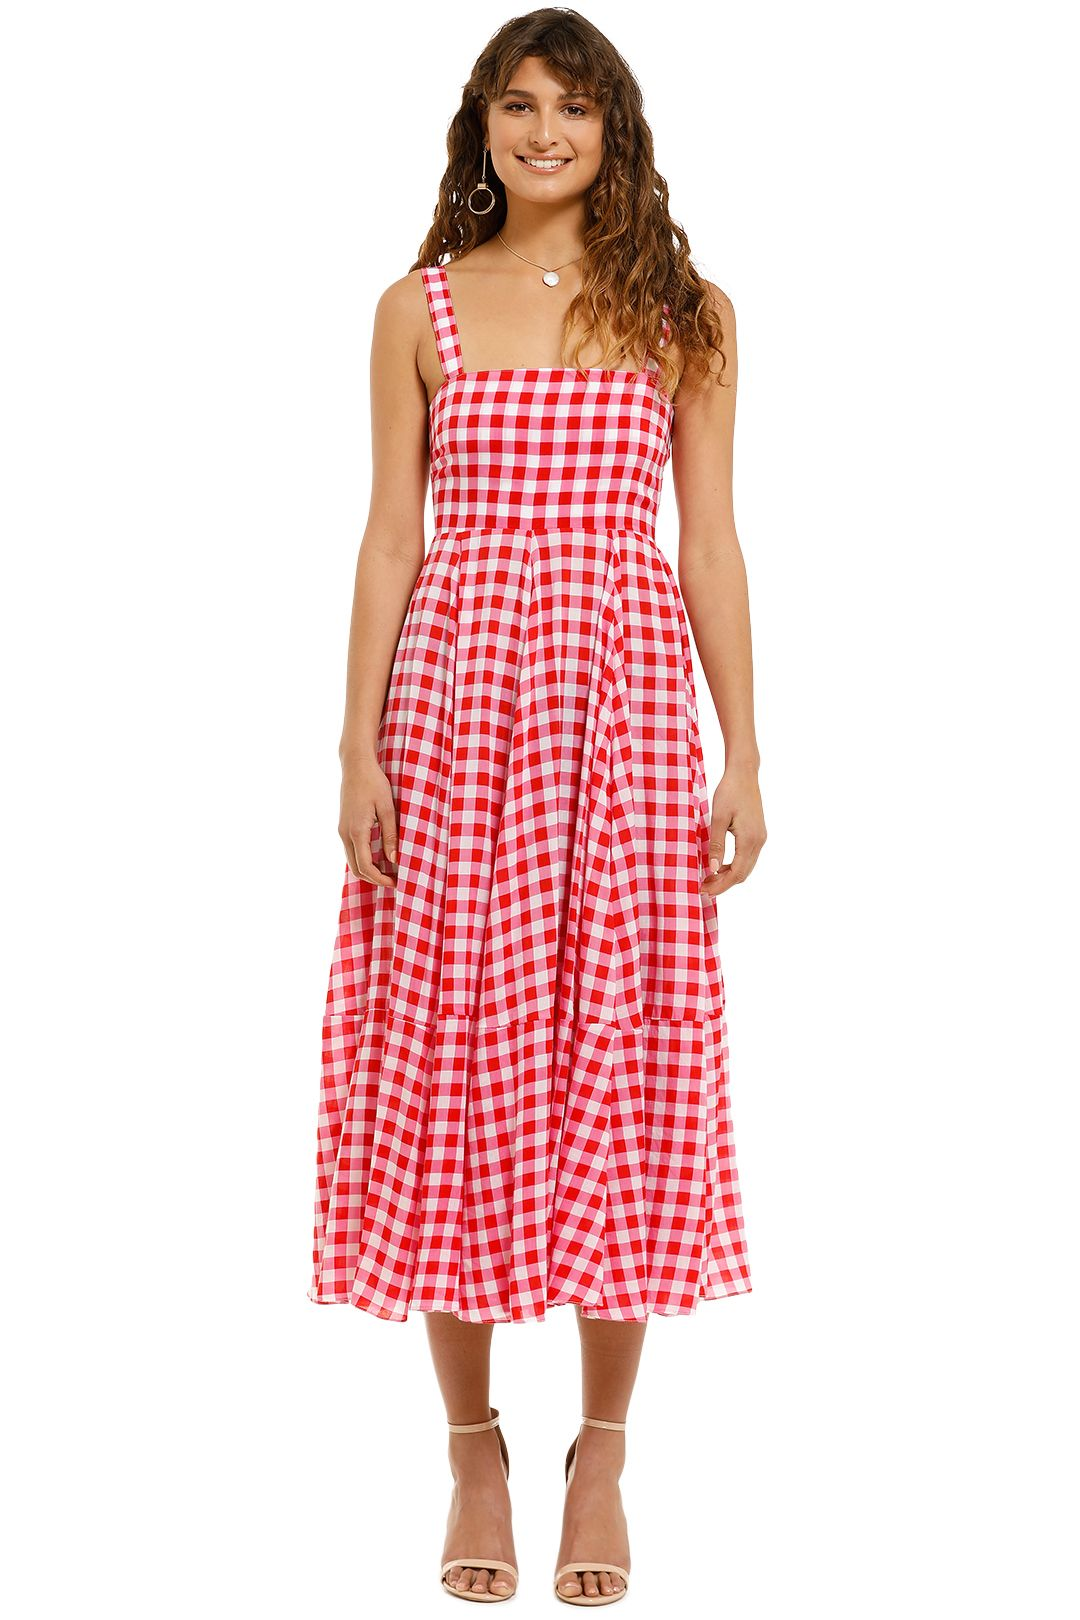 SWF-Apron-Maxi-Dress-Gingham-Floss-Front